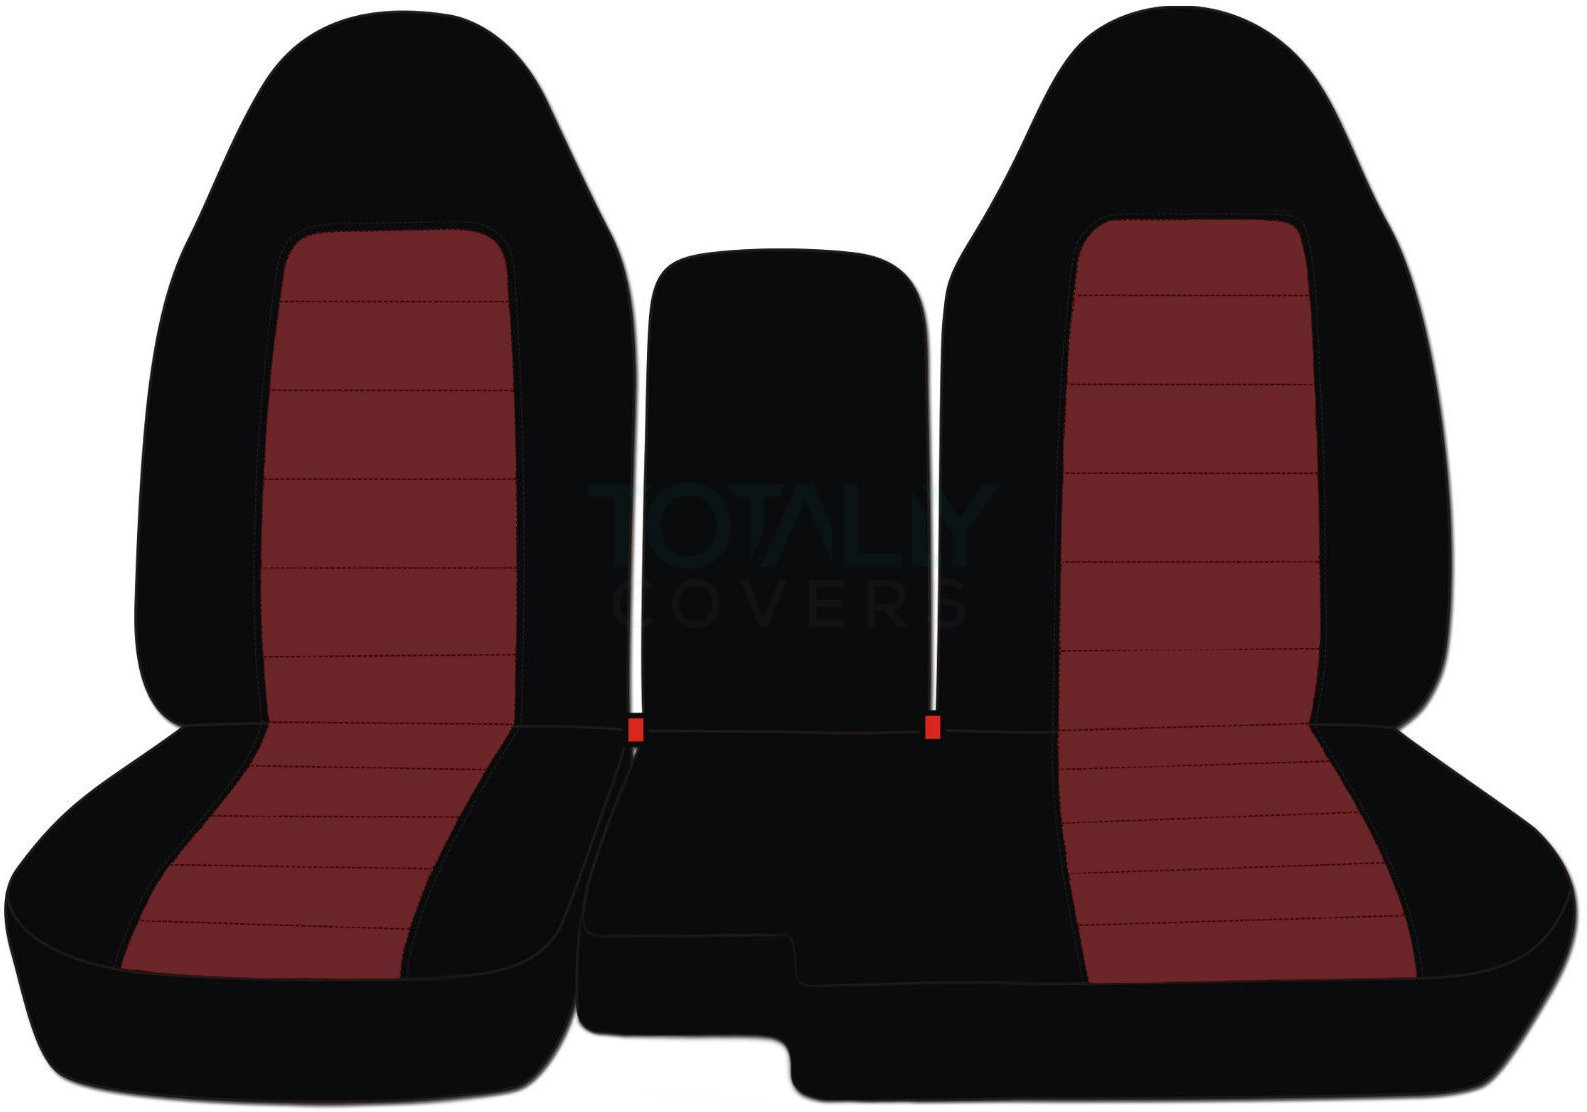 Totally Covers Fits 2004-2012 Ford Ranger/Mazda B-Series Two-Tone Truck Seat Covers (60/40 Split Bench) w Center Armrest/Console Cover: Black & Burgundy (21 Colors) 2005 2006 2007 2008 2009 2010 2011